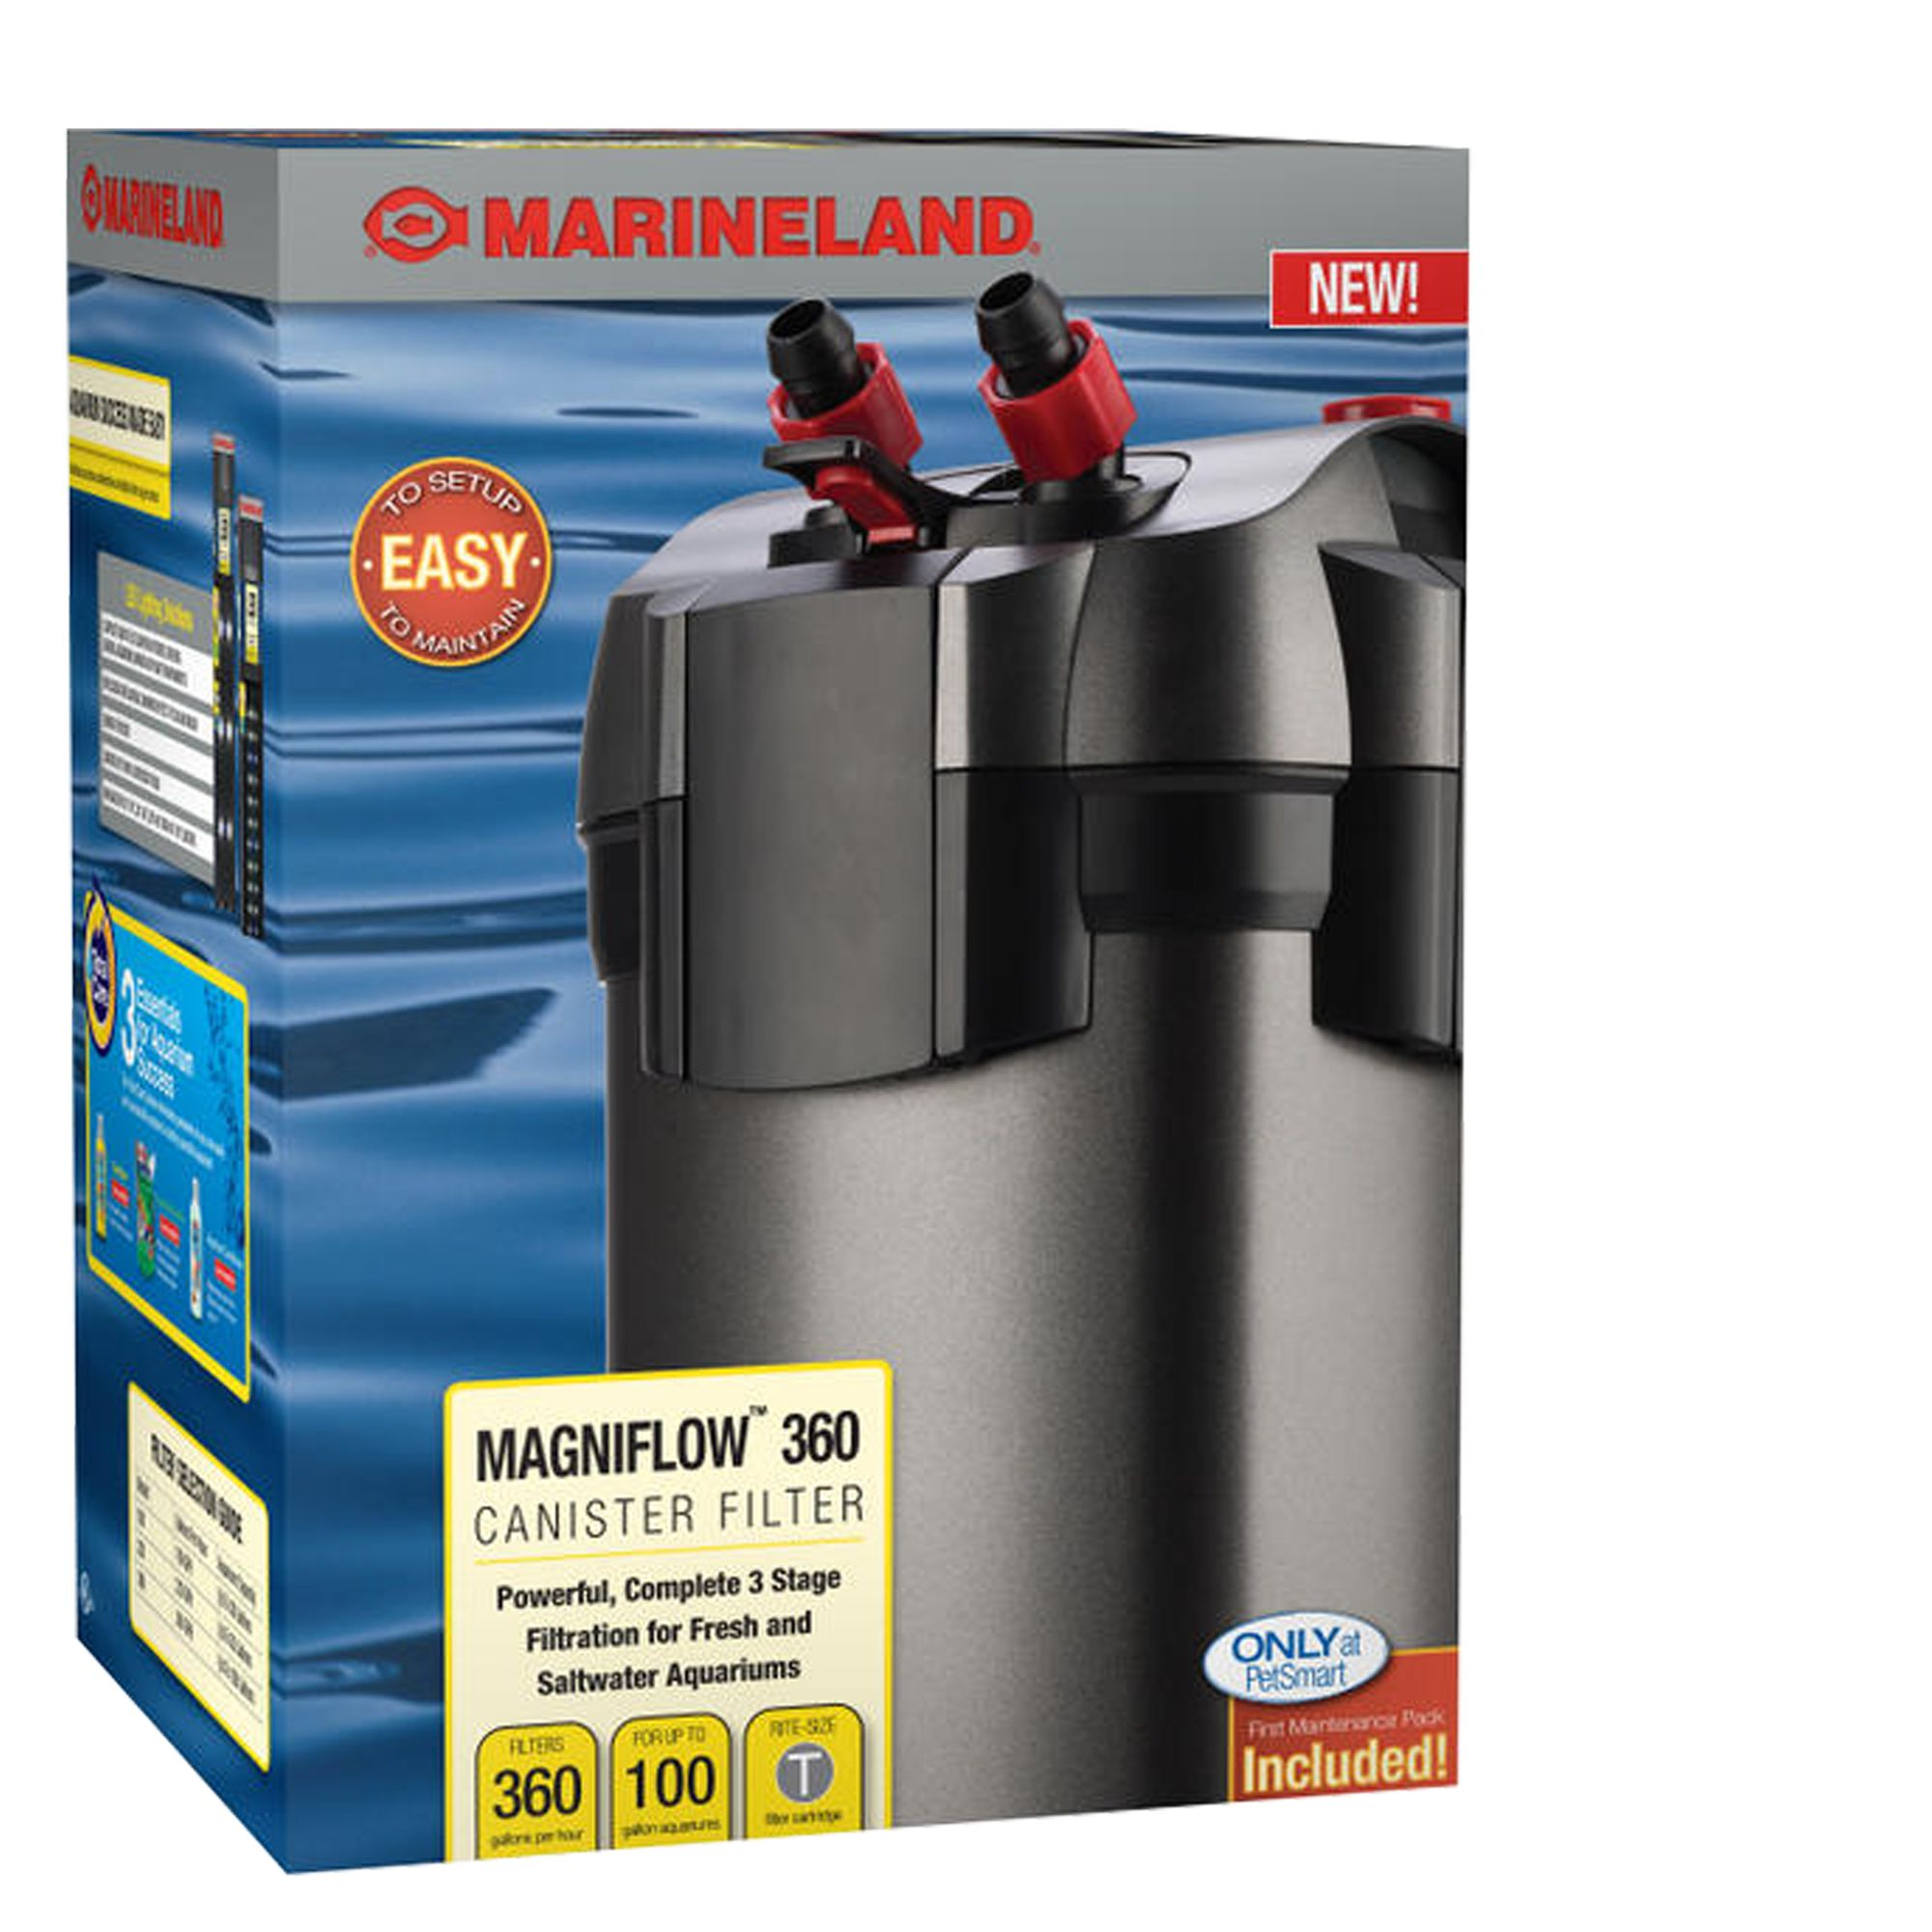 Marineland C360 Canister Filter